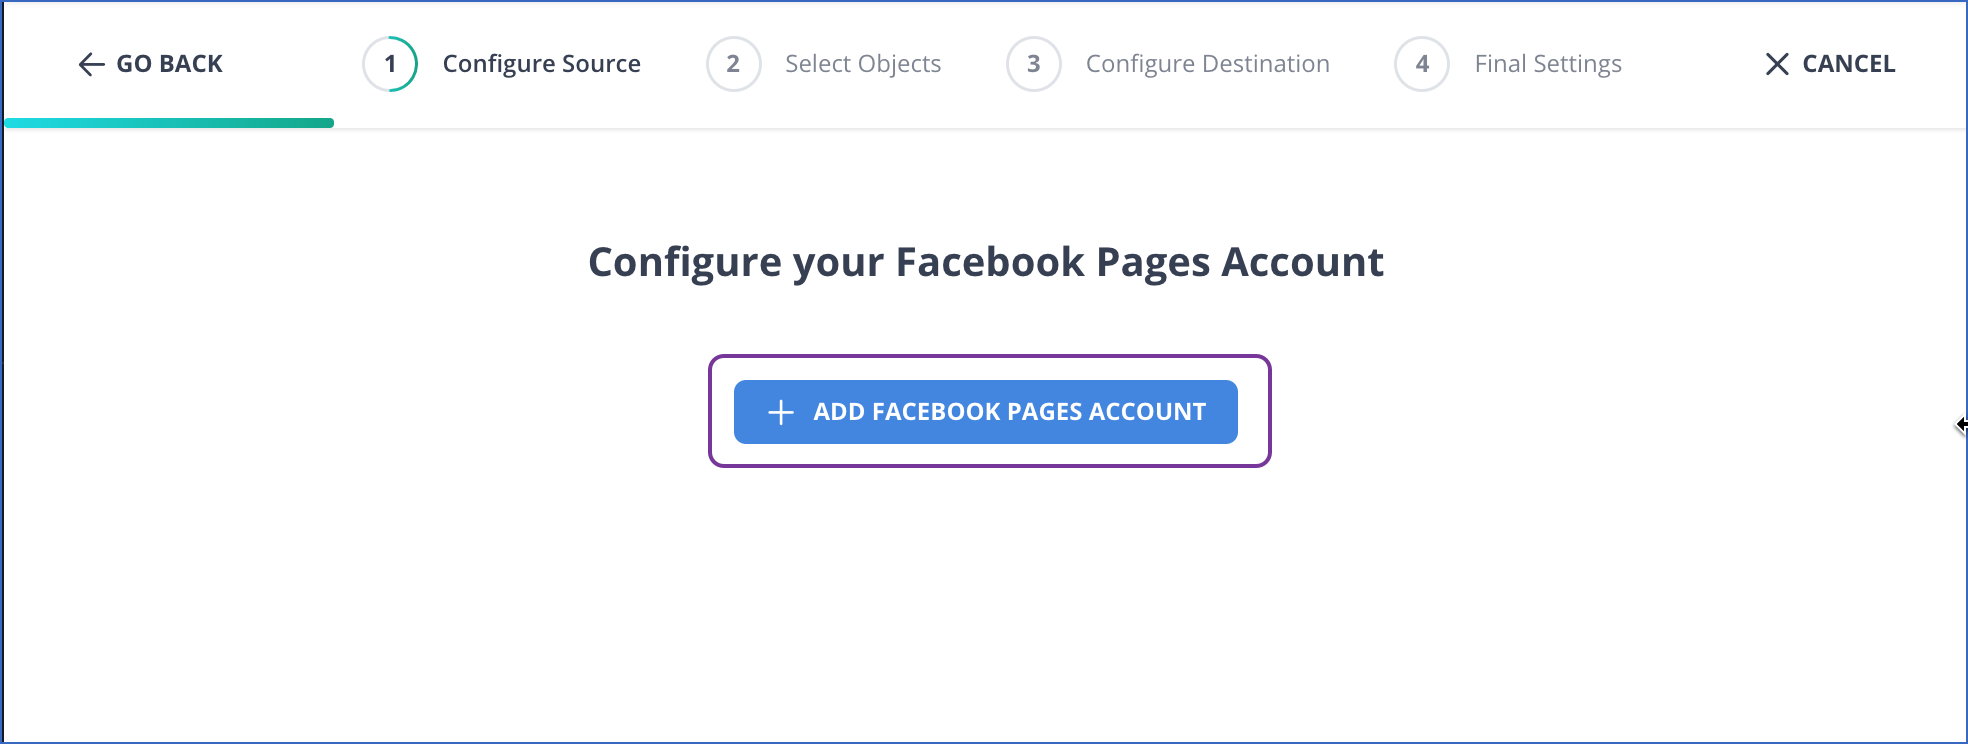 Add Facebook Pages Account